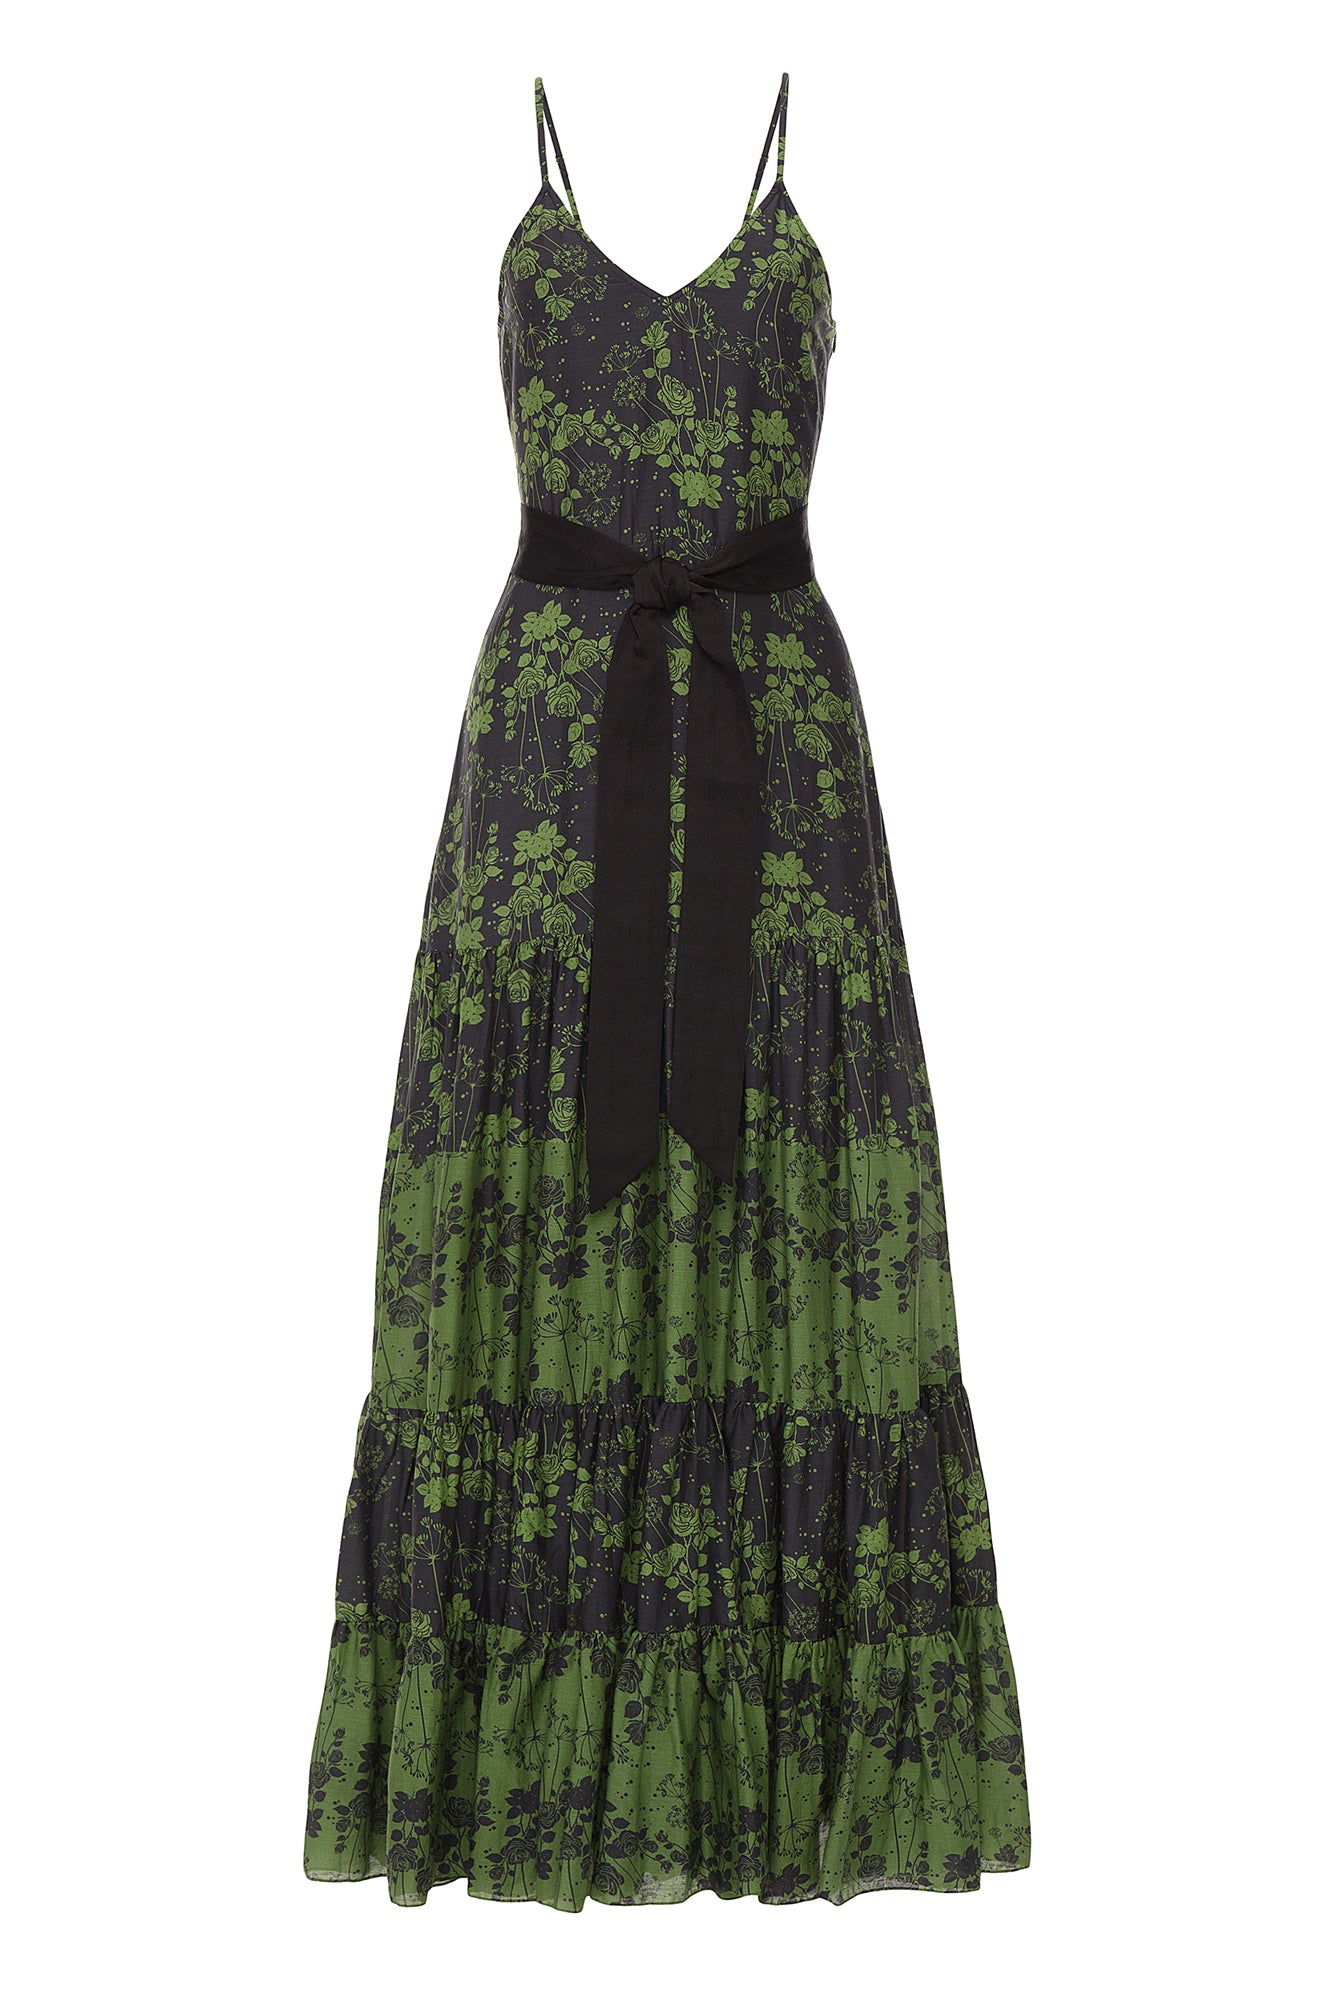 Carolina K Julia Dress Green Roses